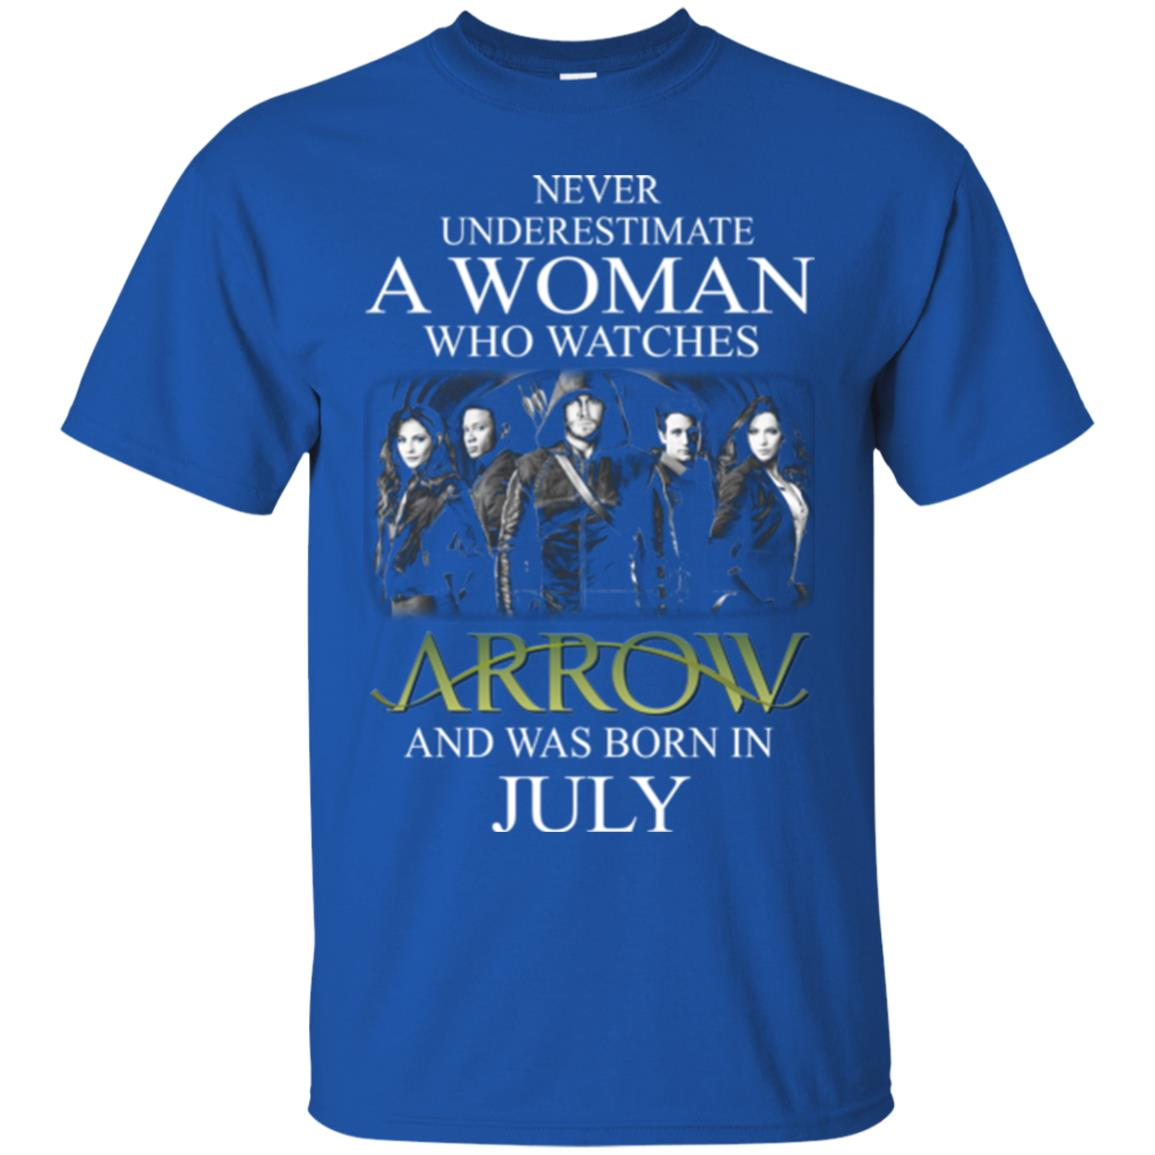 Never Underestimate A woman who watches Arrow and was born in July shirt - image 1518